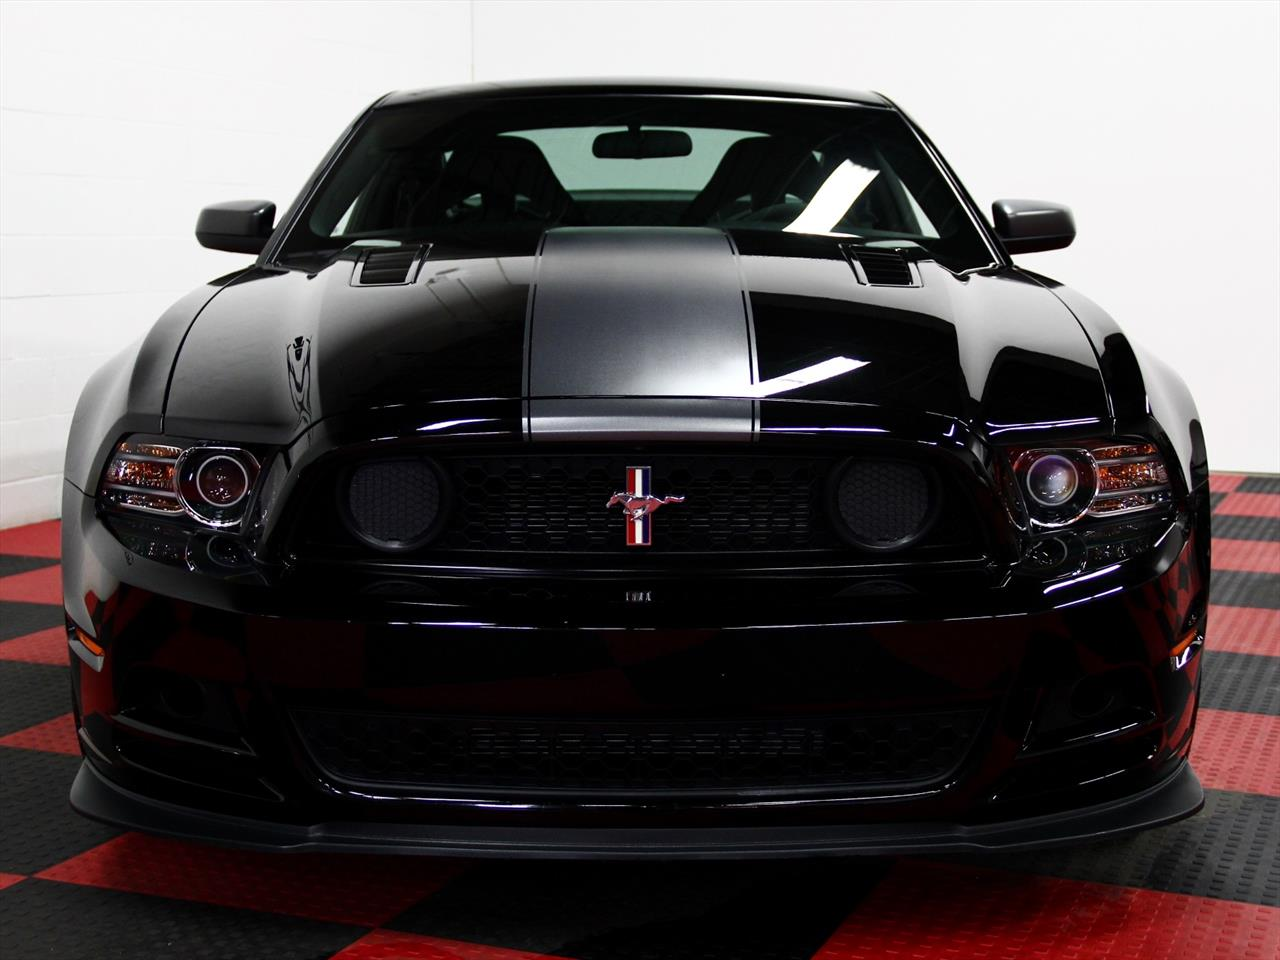 2013 ford mustang boss 302 laguna seca. Black Bedroom Furniture Sets. Home Design Ideas